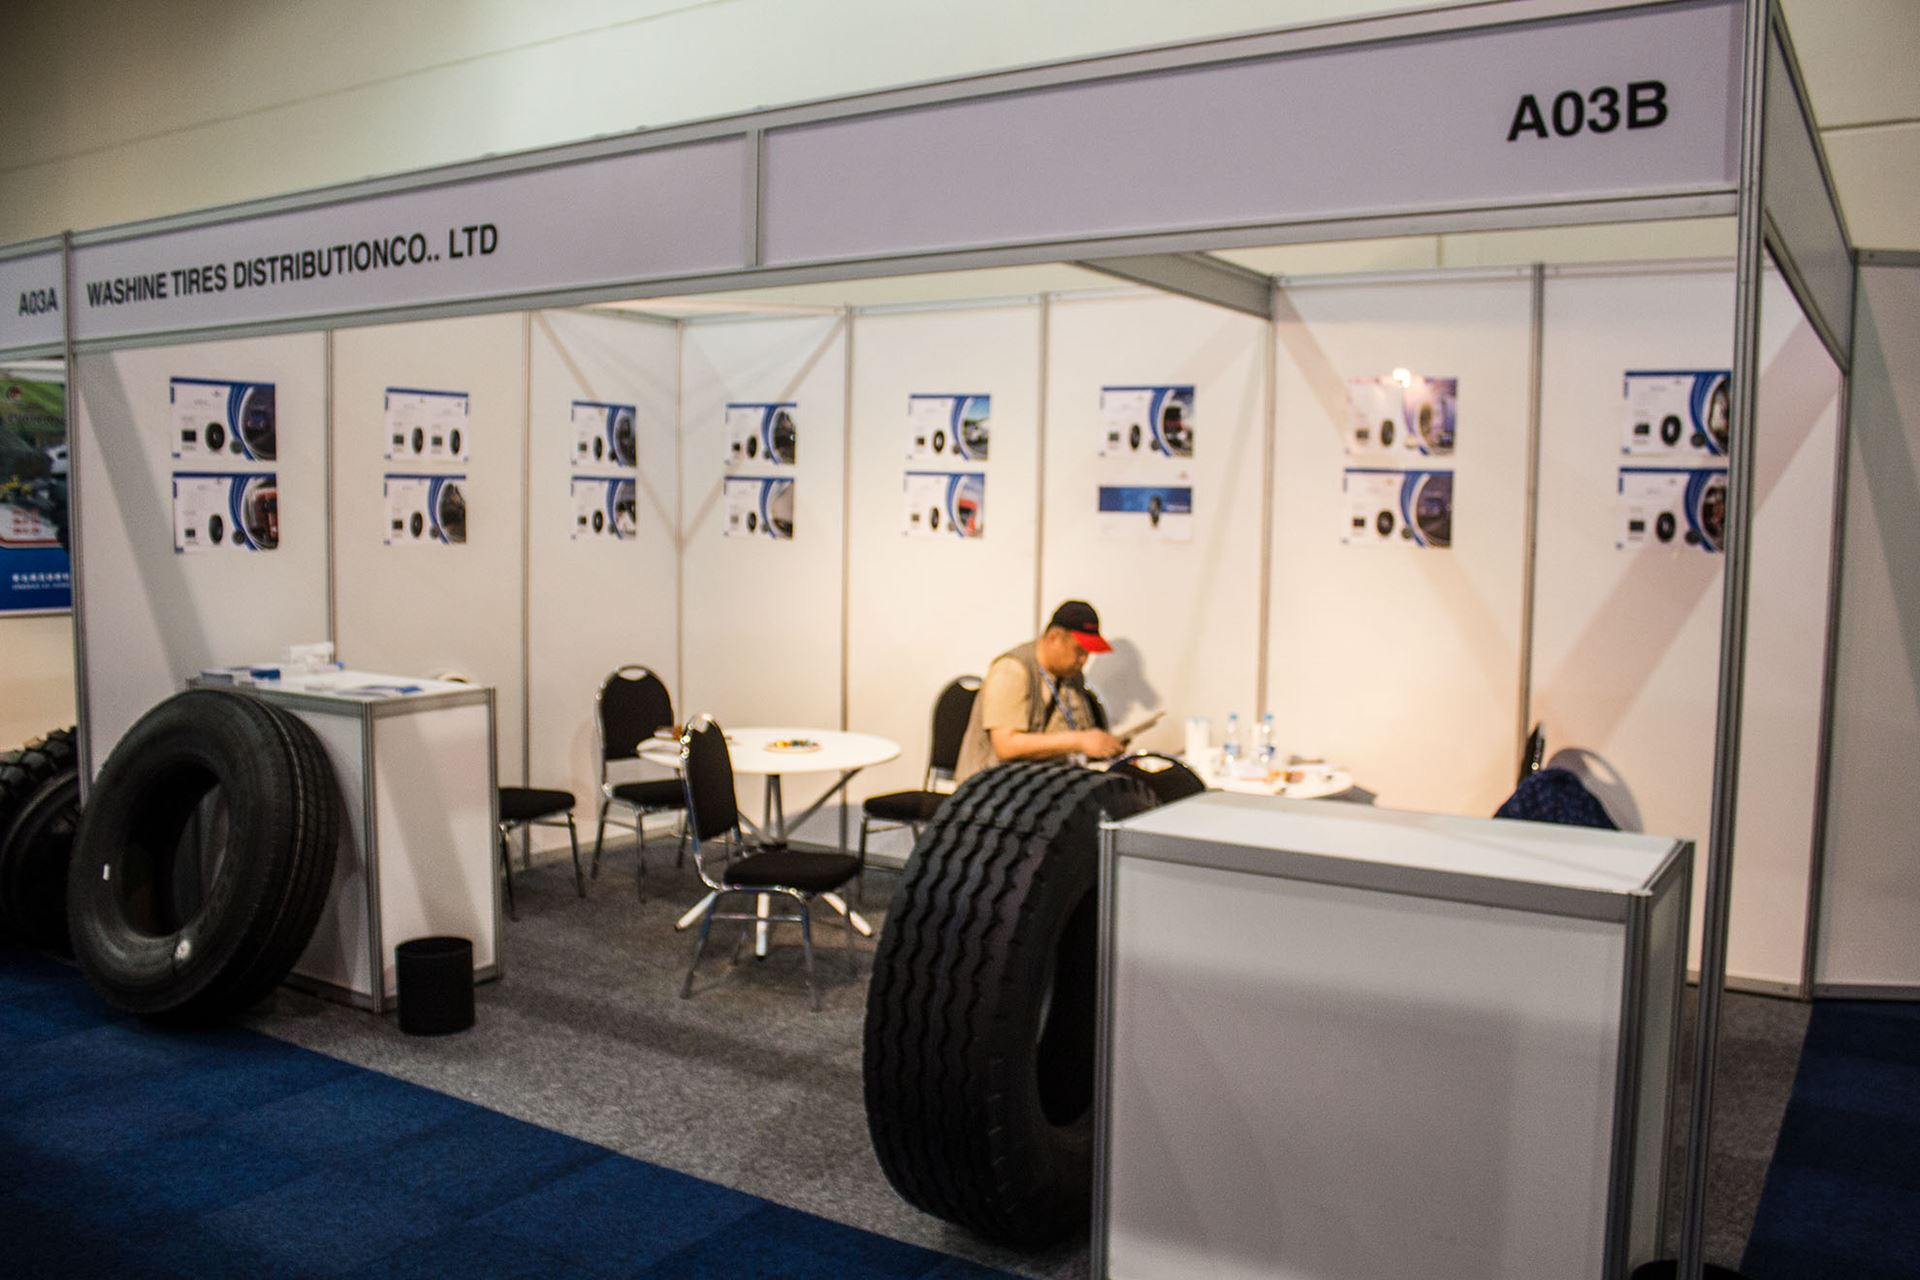 Tyre-Expo-South-Africa-2014-washine-tyres